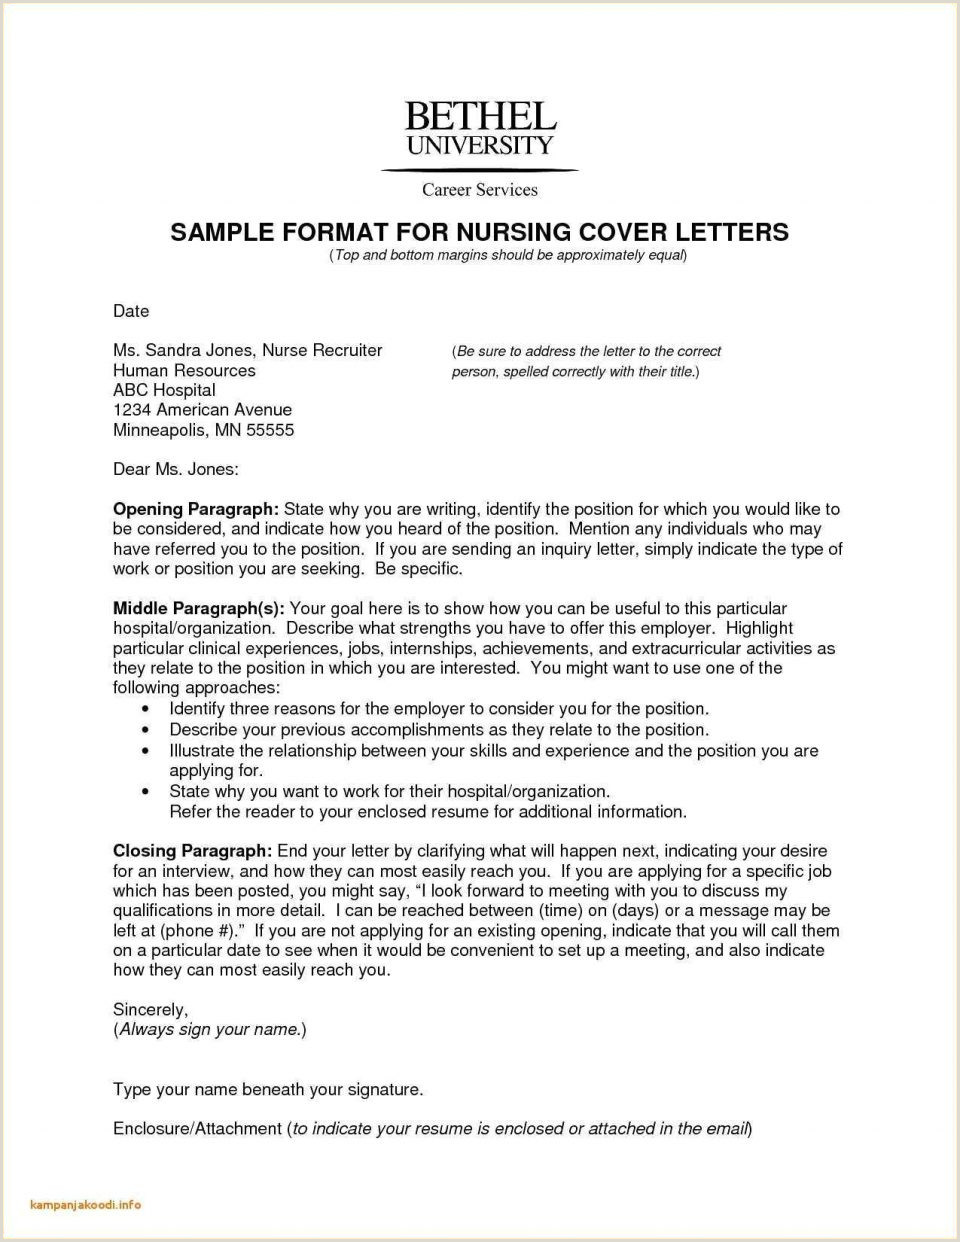 Resume format for Job Interview Pdf Download Resumes for Nurses Resume Nursing Best Template Sample